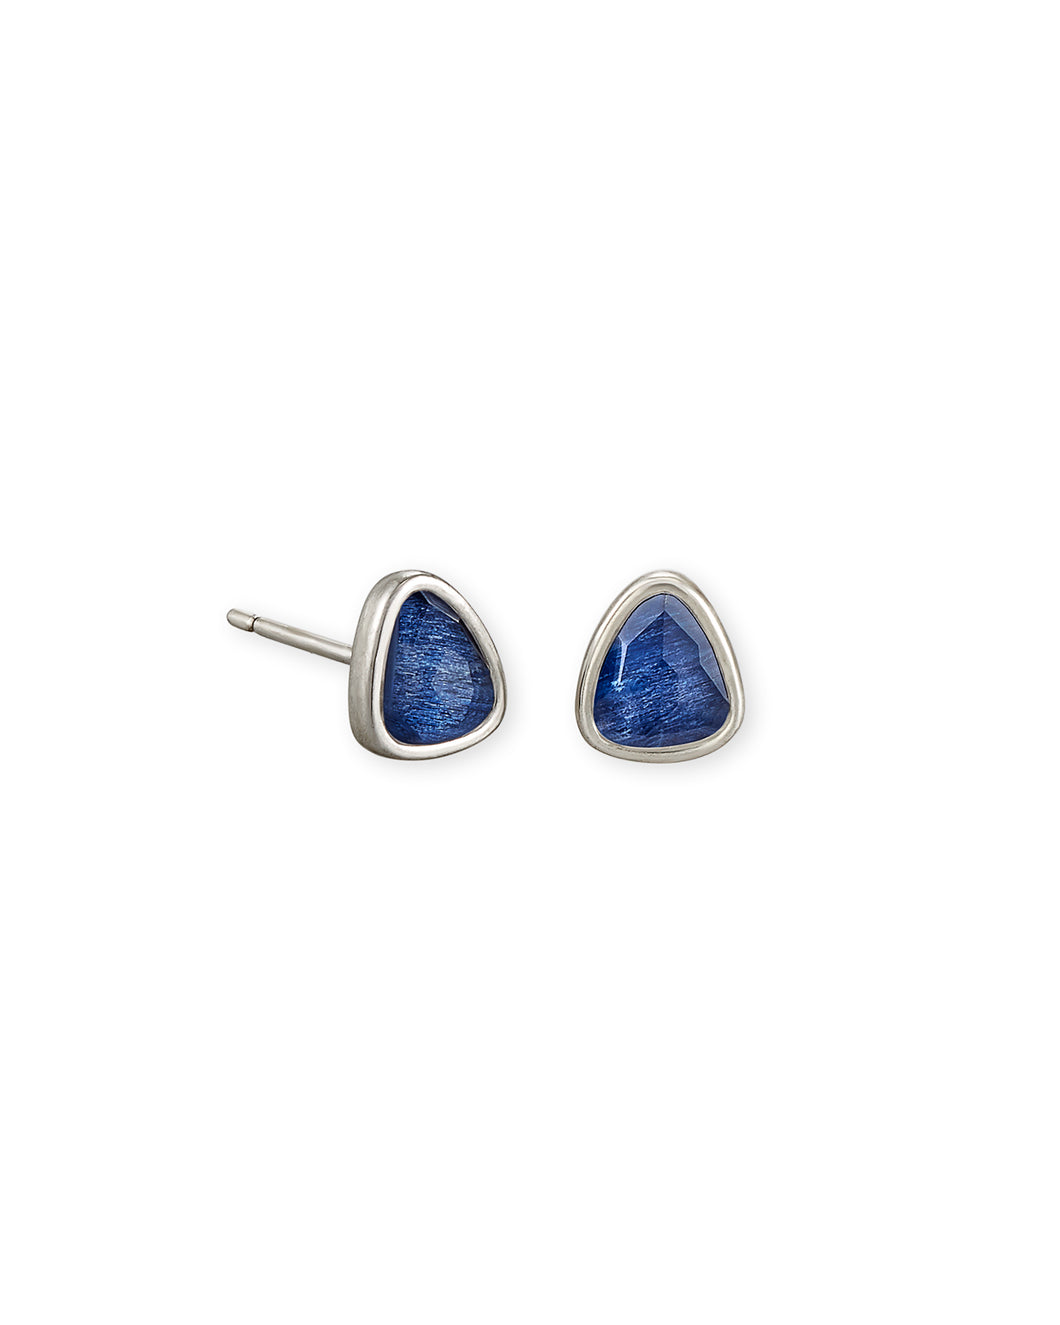 Ivy Vintage Silver Stud Earrings in Navy Wood